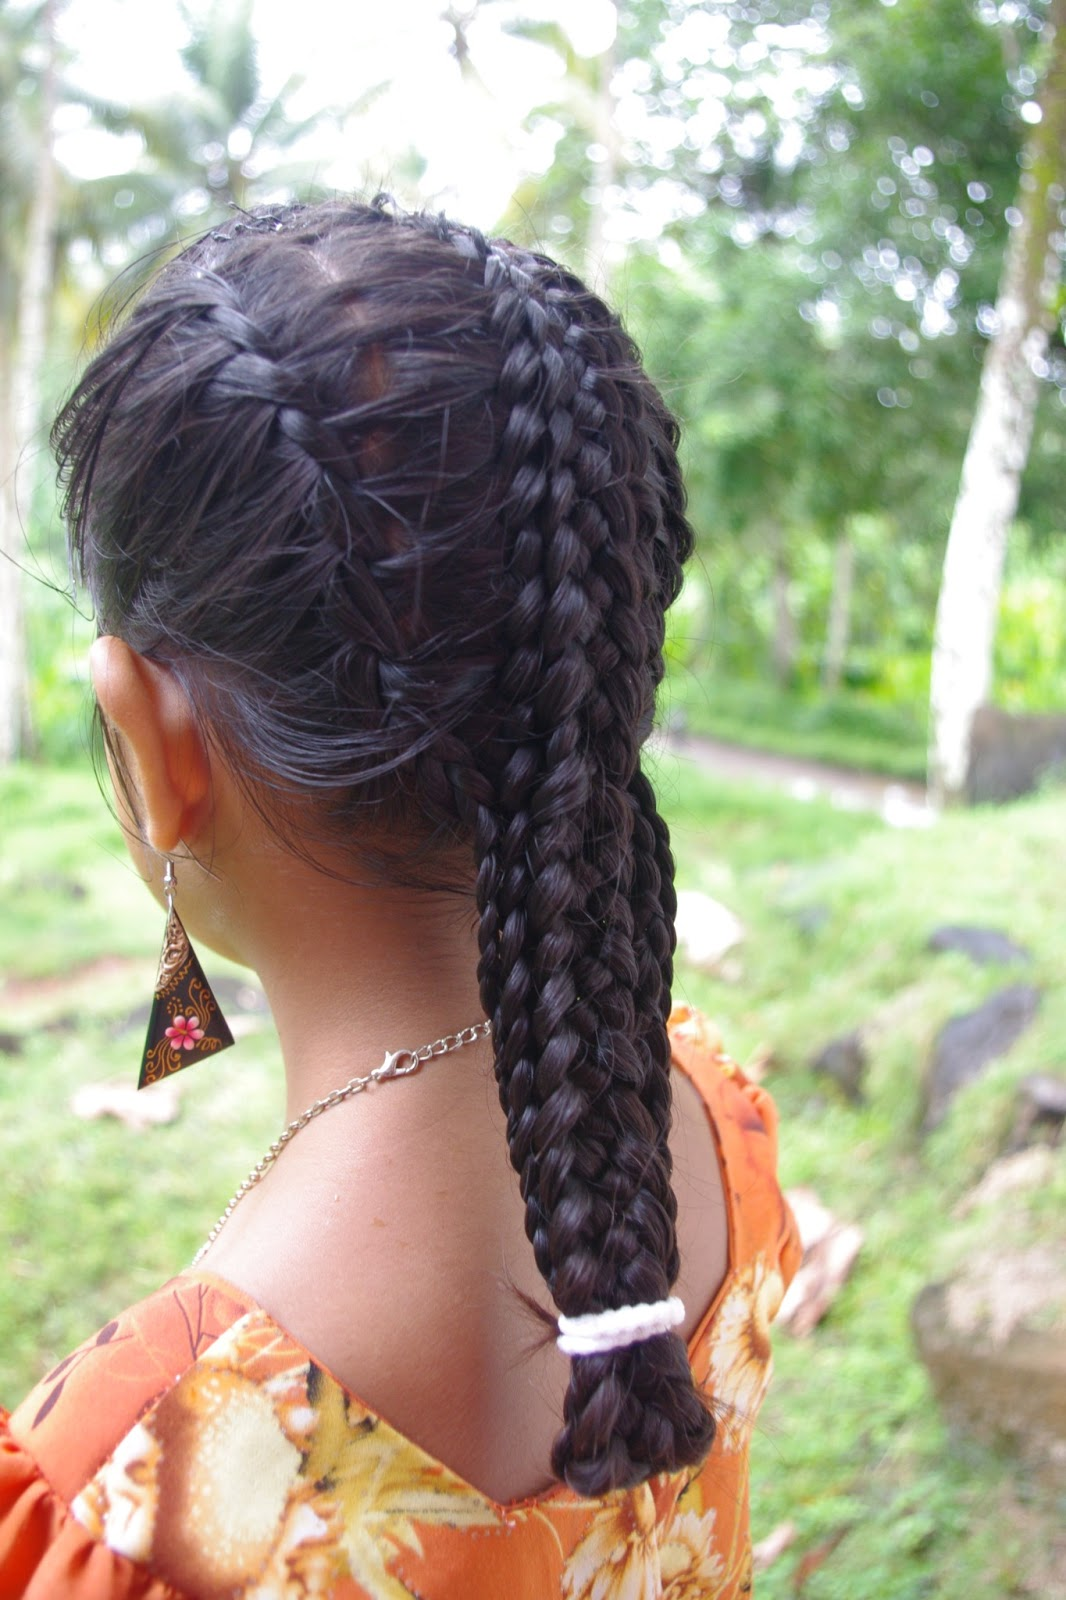 Micronesian Girl Basket Weave French Braids New